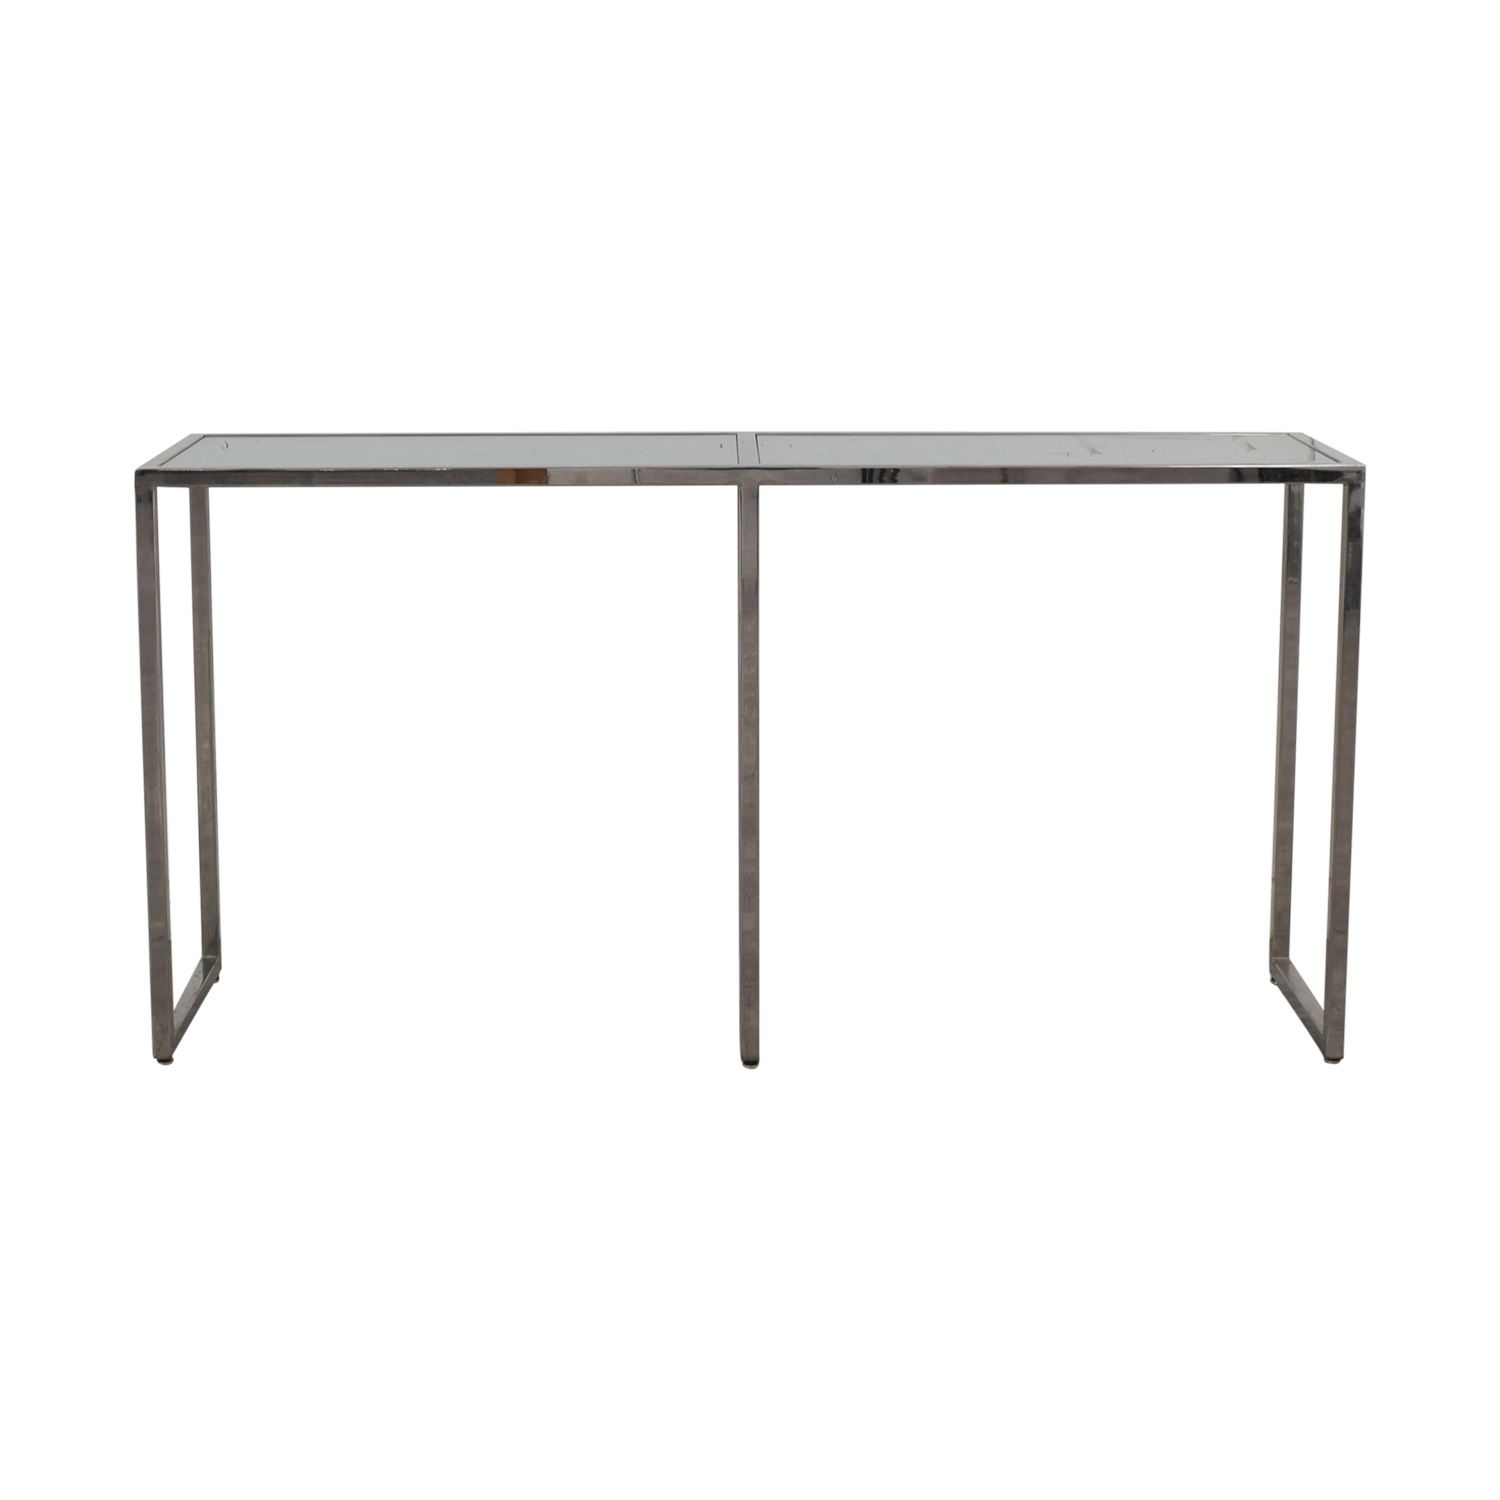 TR Designs TR Designs Tinted Glass and Chrome Console Table nyc